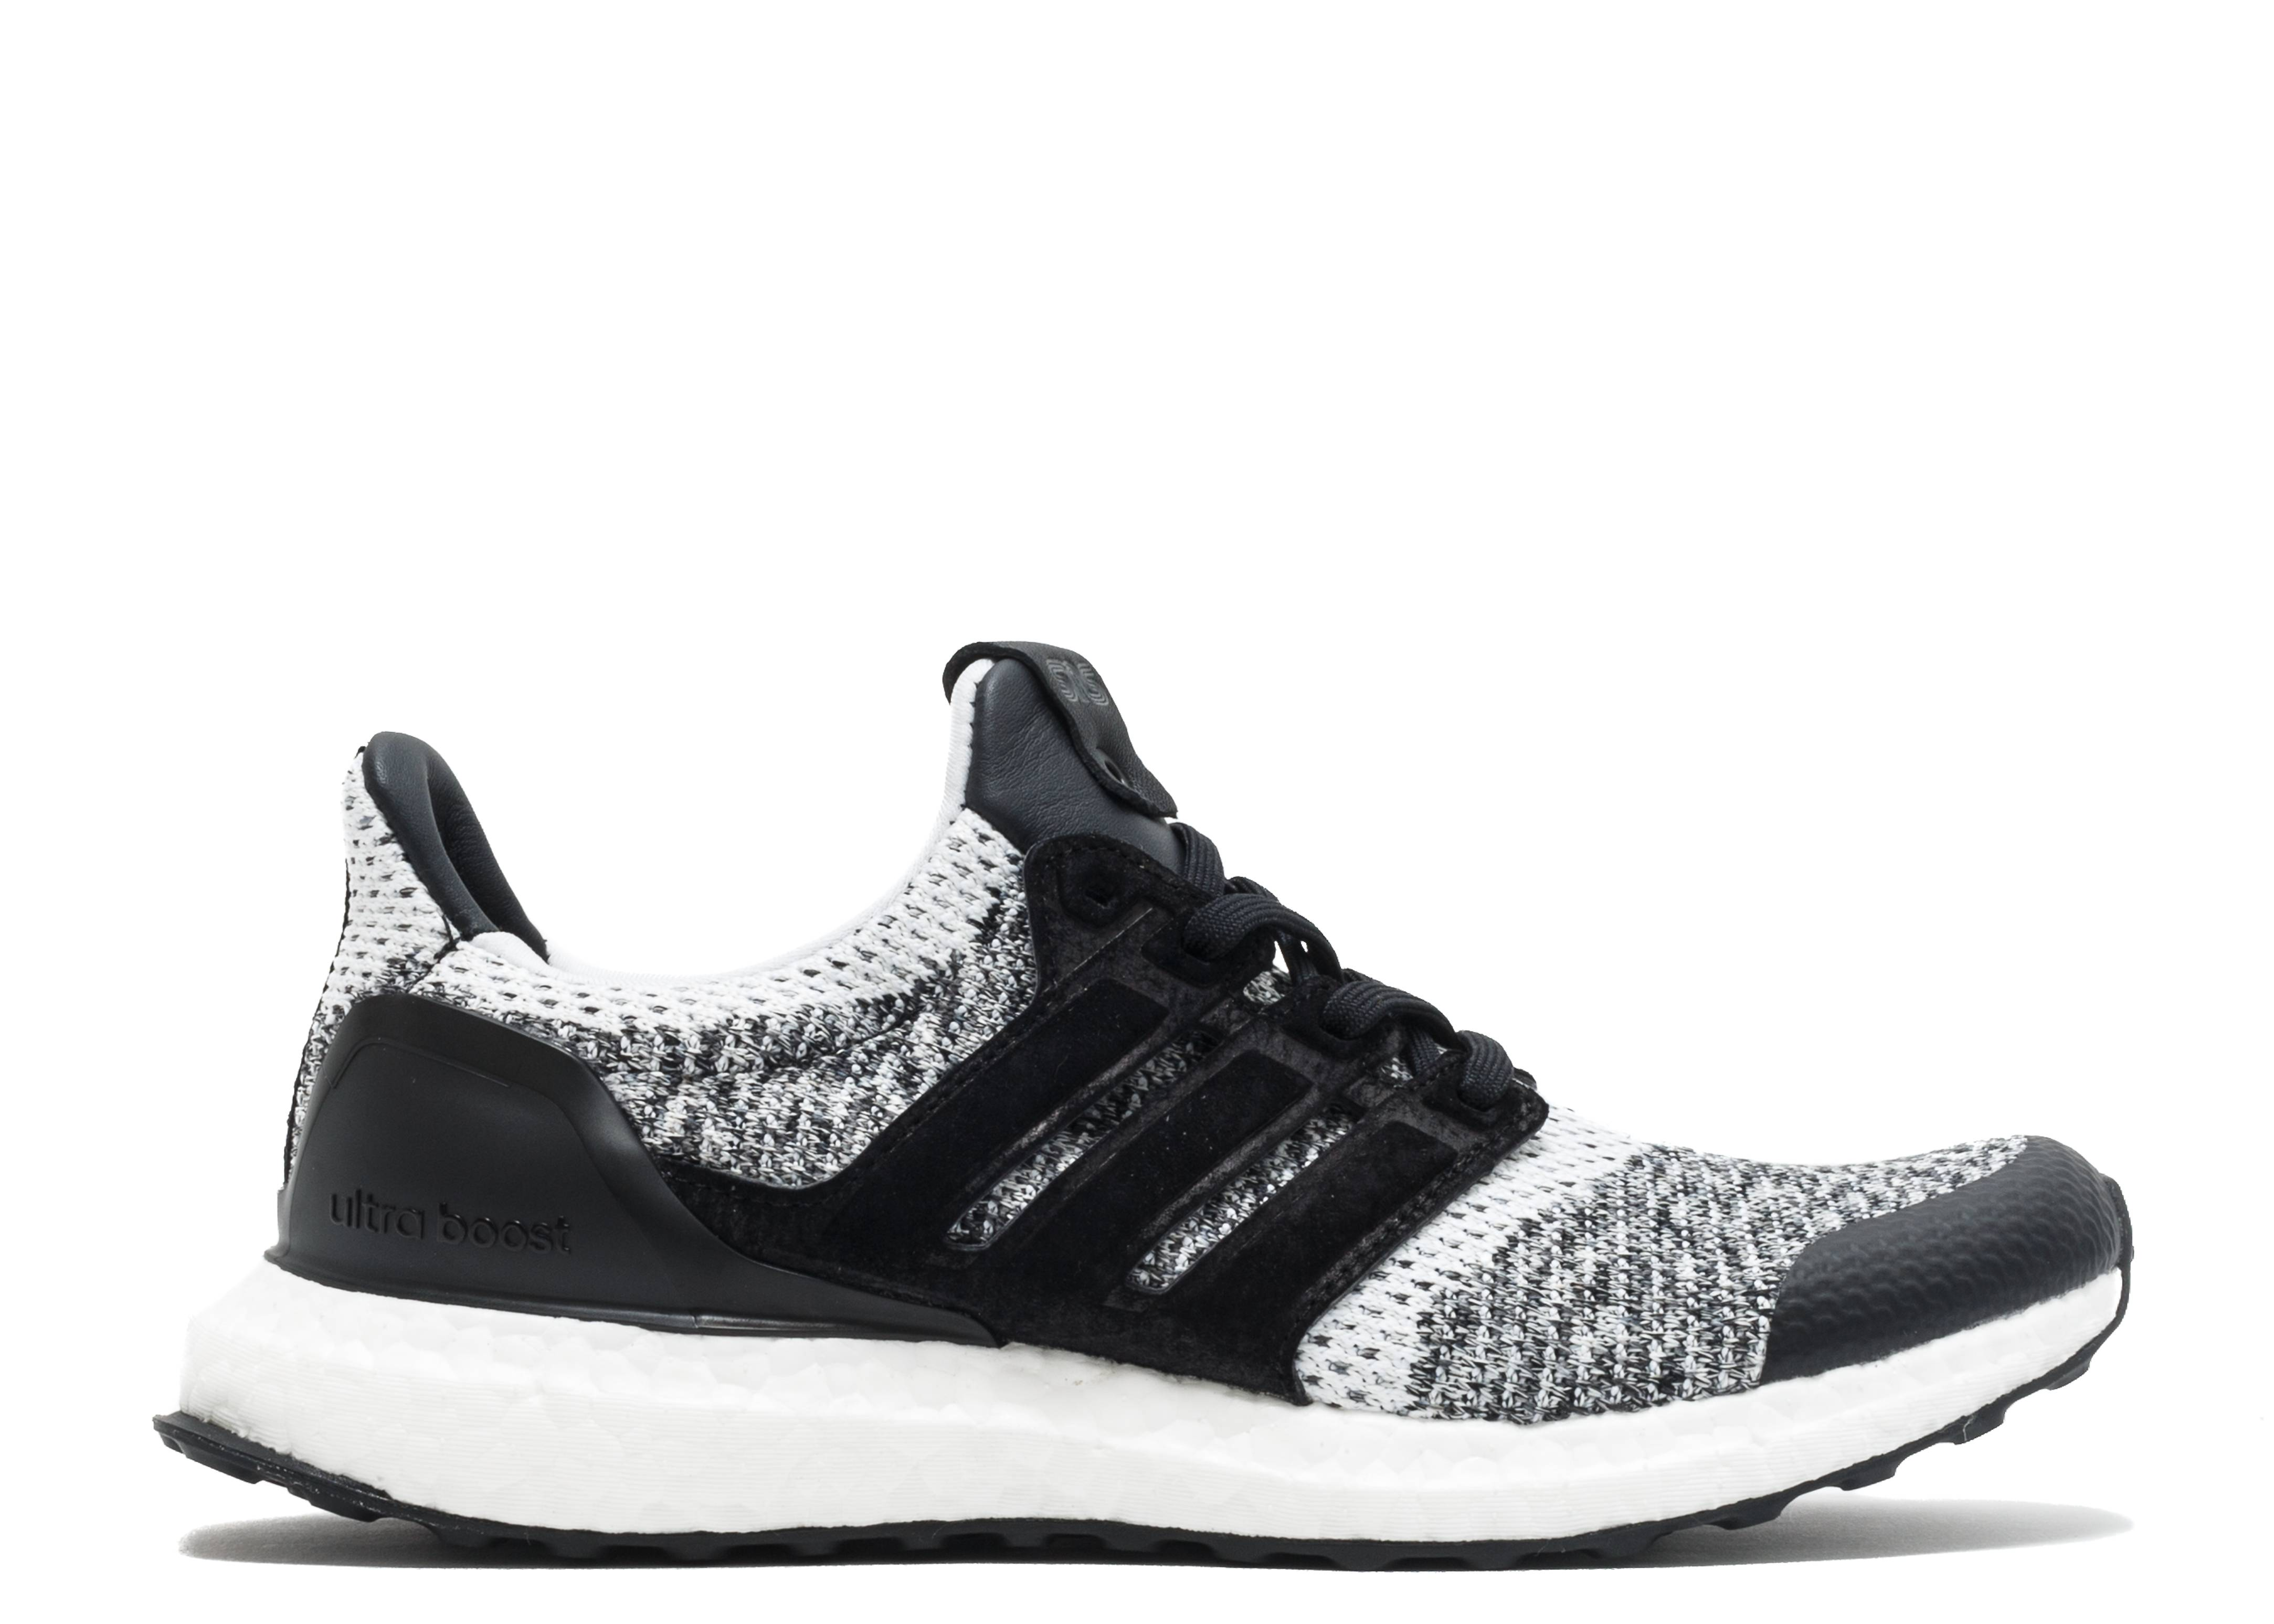 ultra boost sns adidas by2911 ftwwht ftwwht black flight club. Black Bedroom Furniture Sets. Home Design Ideas